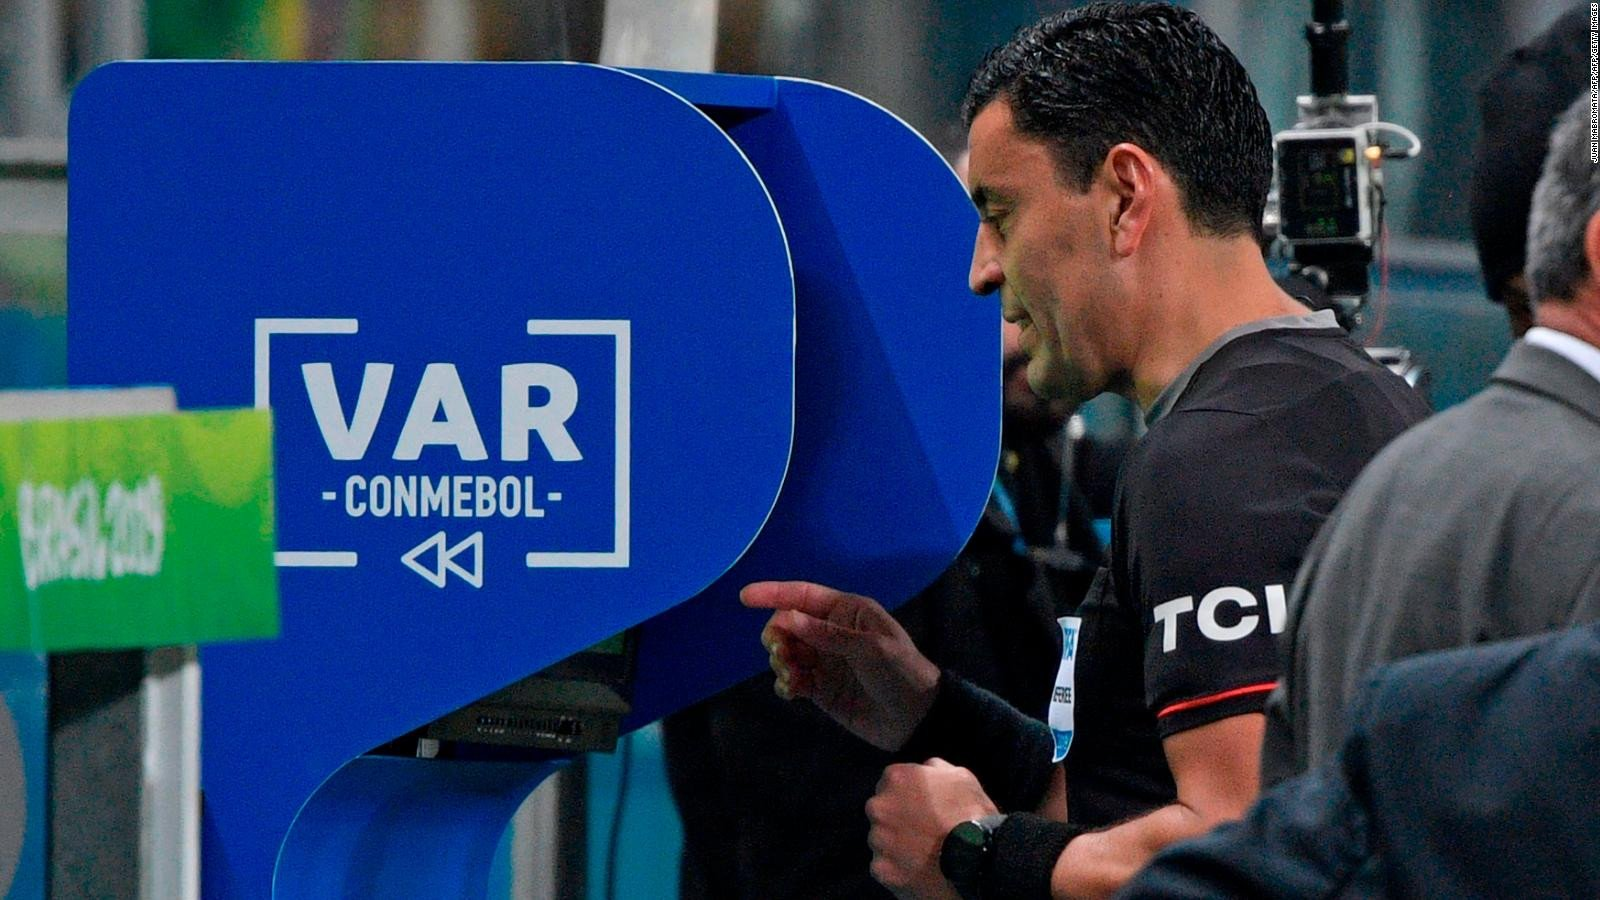 CONMEBOL proposes VAR time-outs and team reviews